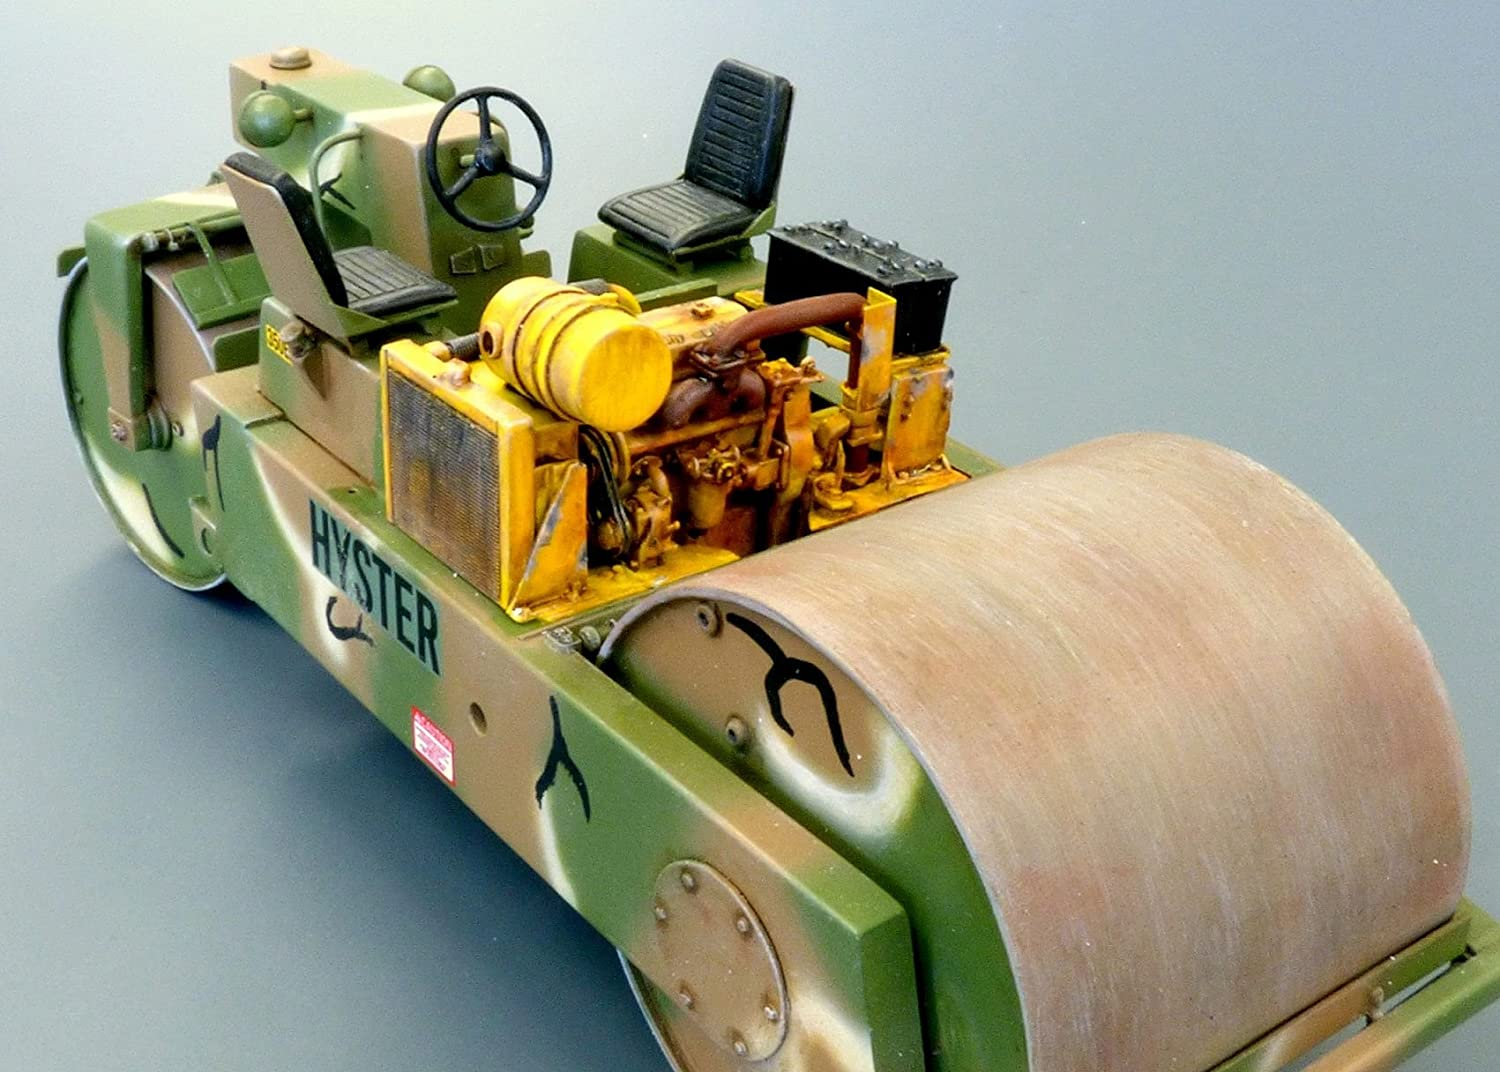 Plus model 467 U.S.Road roller in 1:35